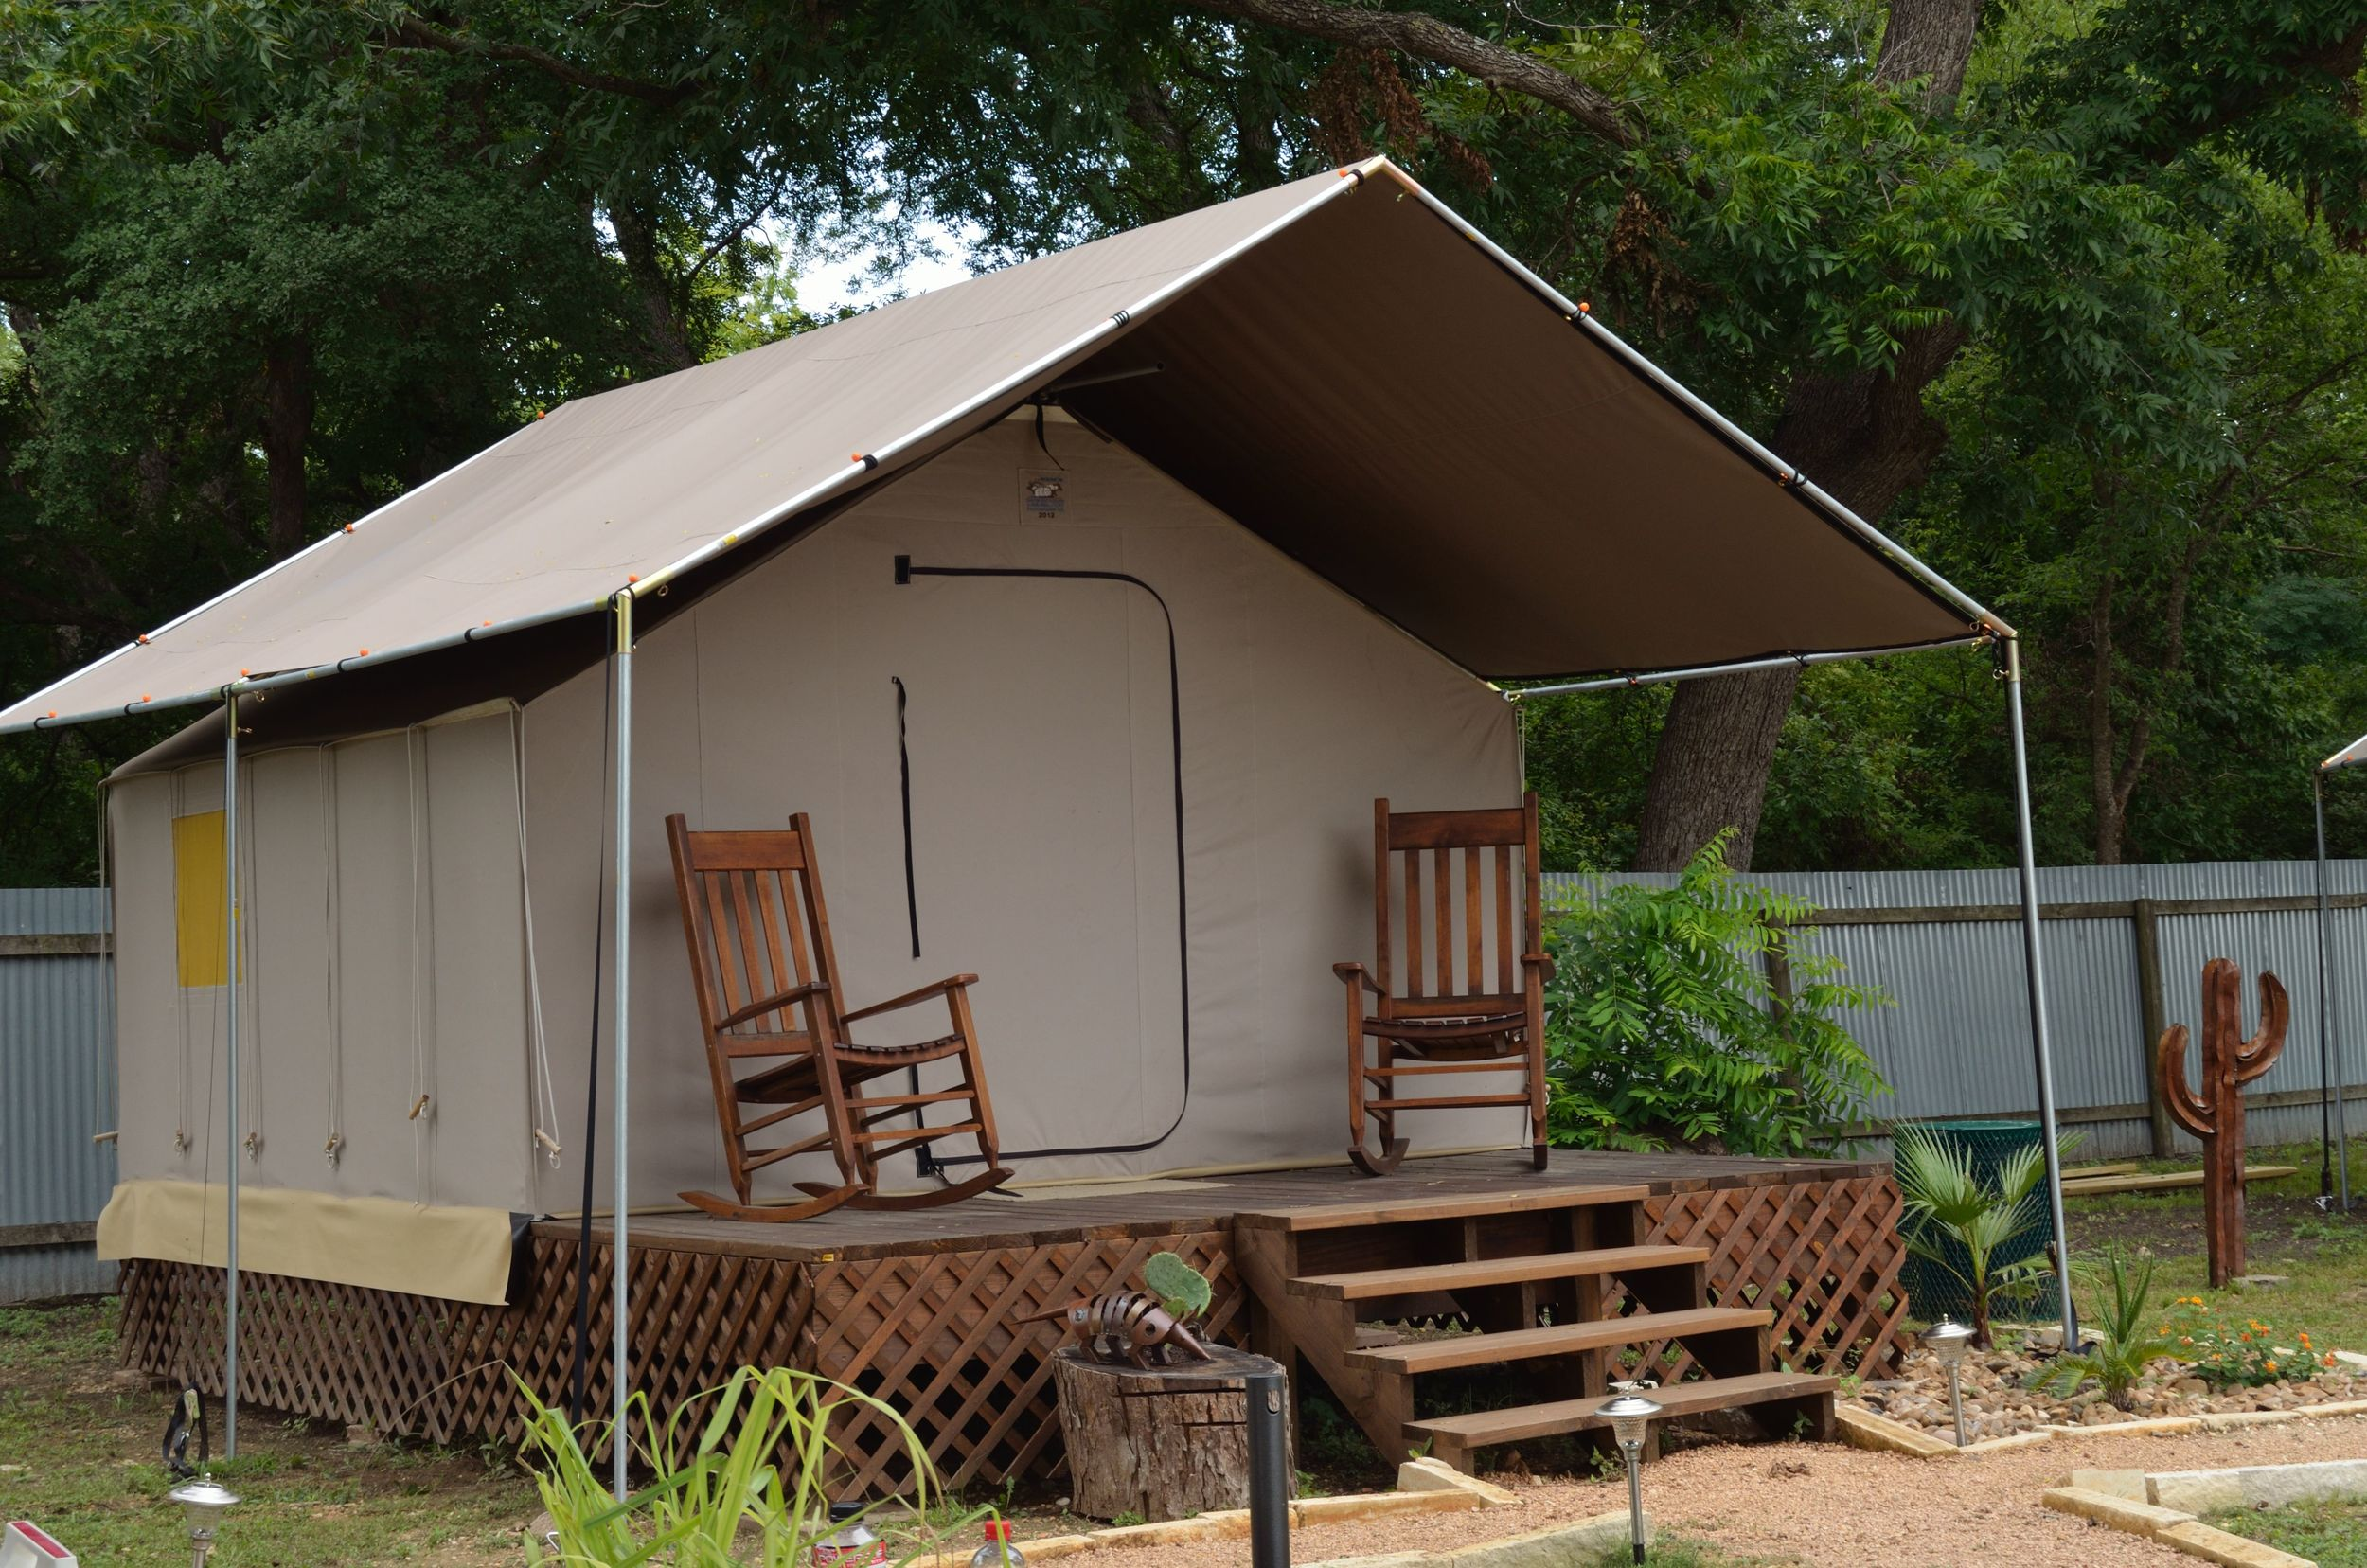 Canvas Cottage - $3,500 to house a person